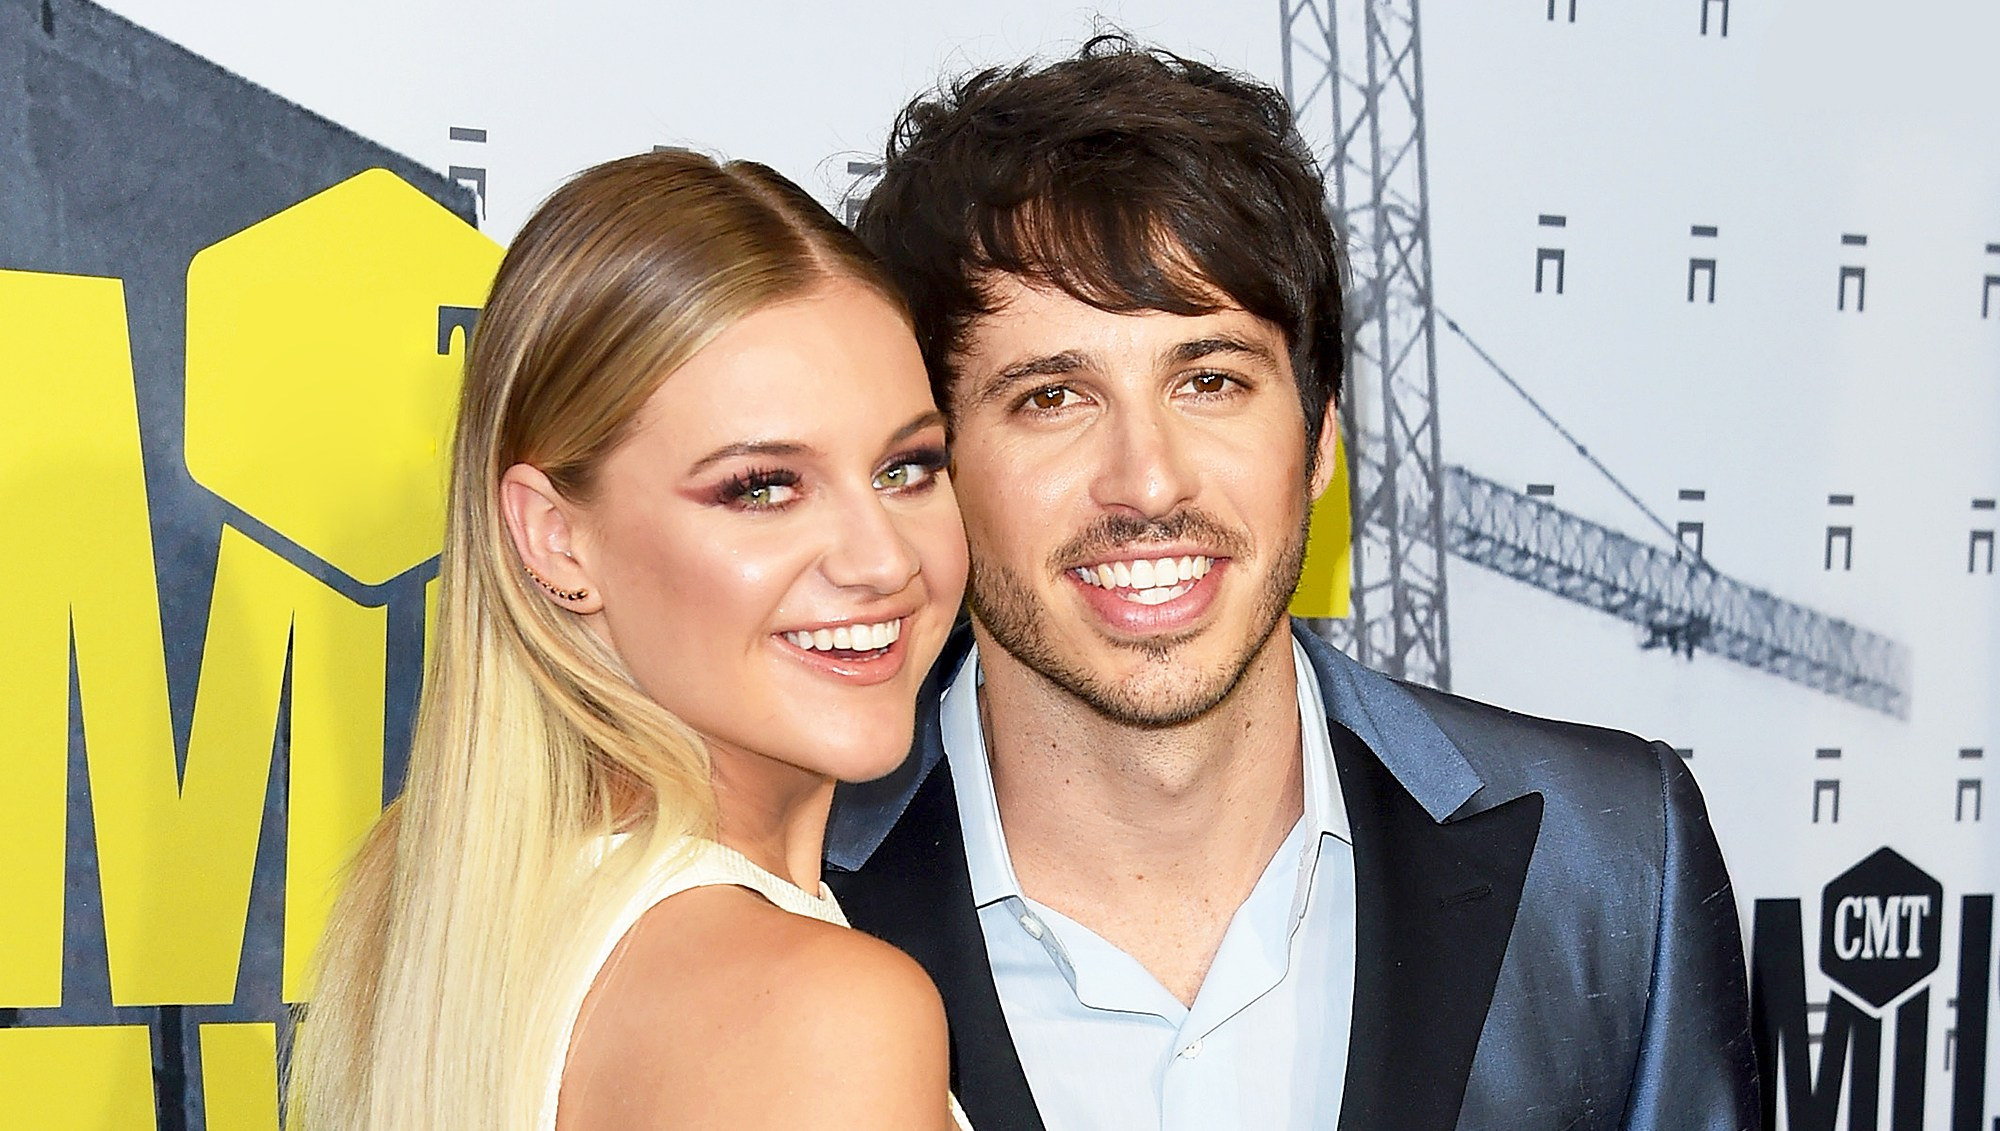 Kelsea Ballerini and Morgan Evans attend the 2017 CMT Music Awards at the Music City Center in Nashville, Tennessee.